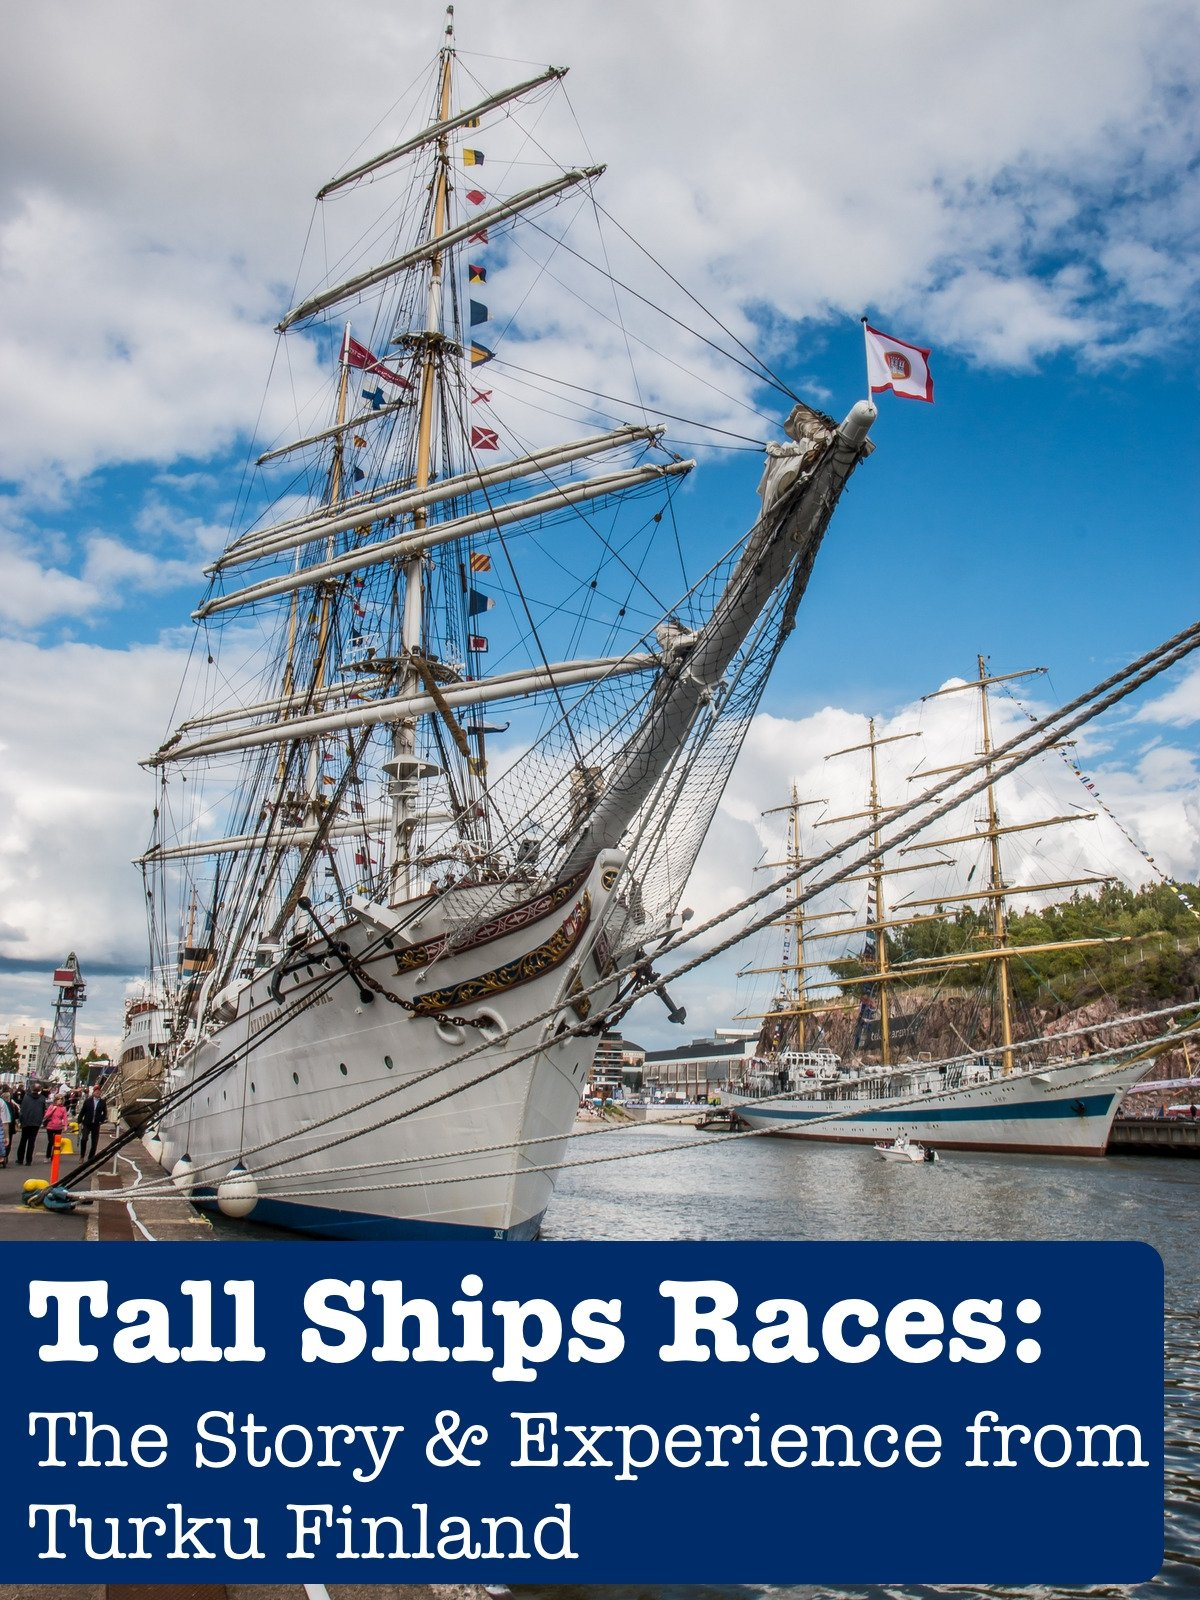 Clip: Tall Ships Races: The Story and Experience from Turku Finland